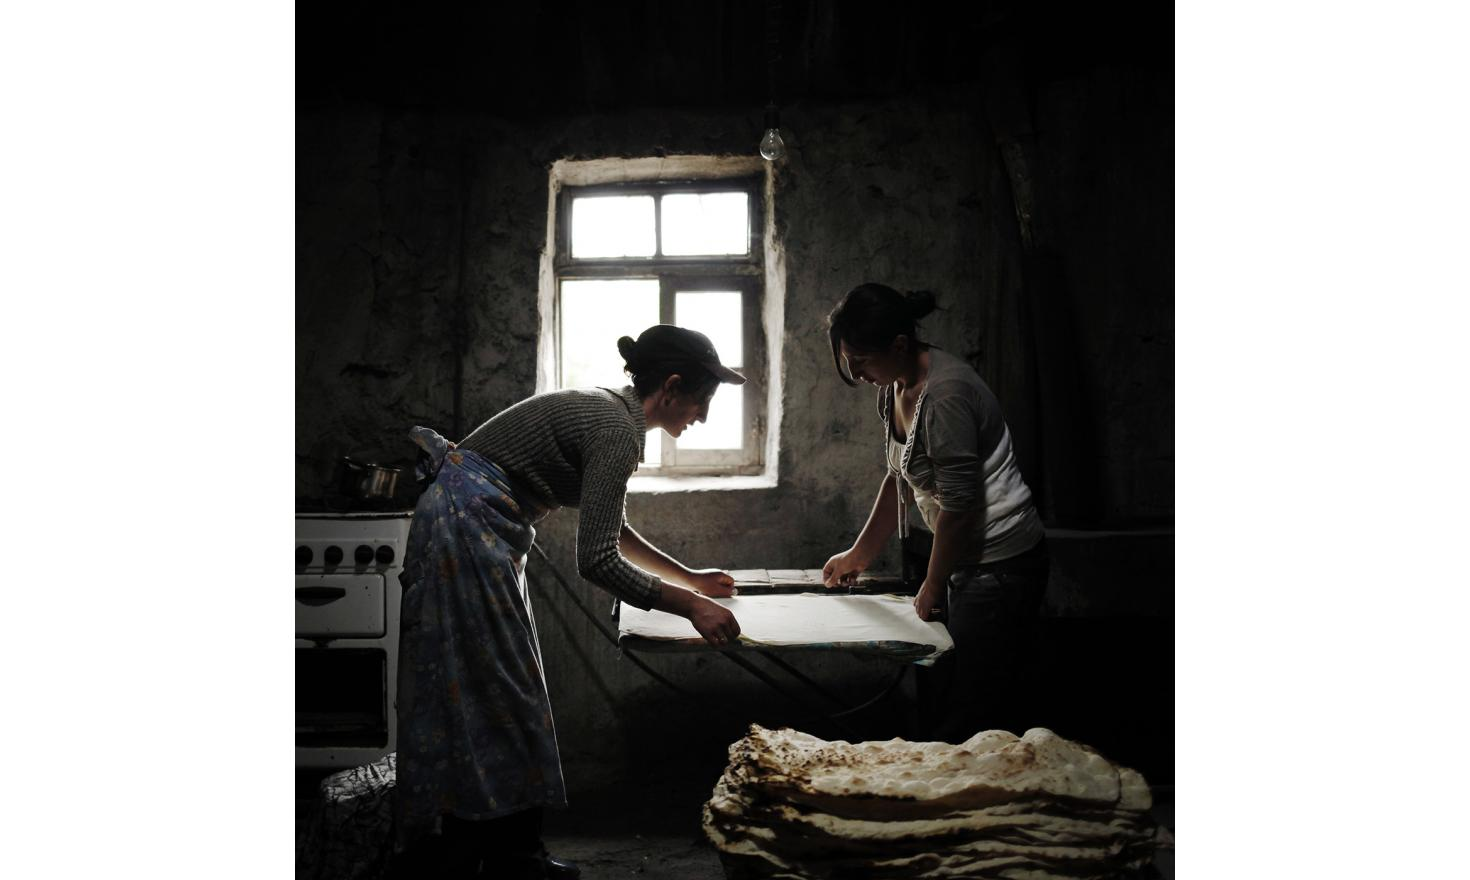 Anoush and Ruzanna, prepare lavash, the traditional Armenian bread. Women prepare it in large quantities and then keep it for one or two weeks. It's a way of saving money. Their husbands are brothers and both work in Russia.